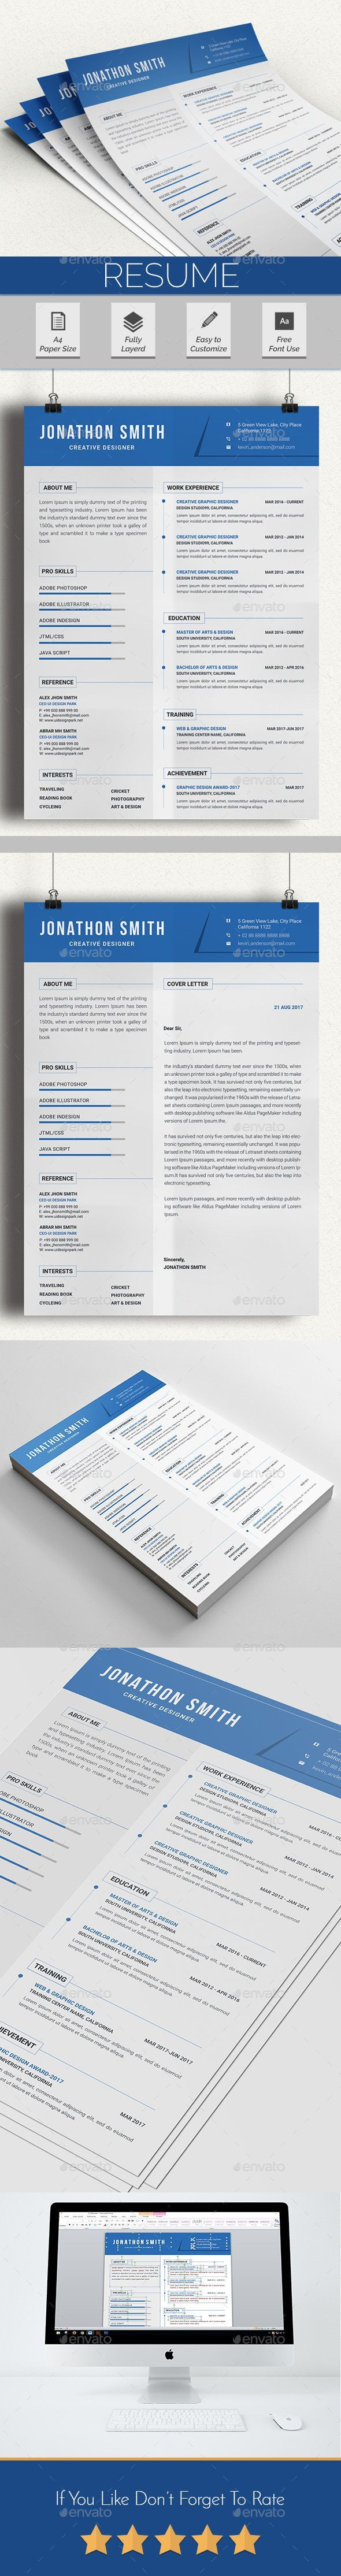 Resume Template Psd Ms Word  Resume Design Ideas